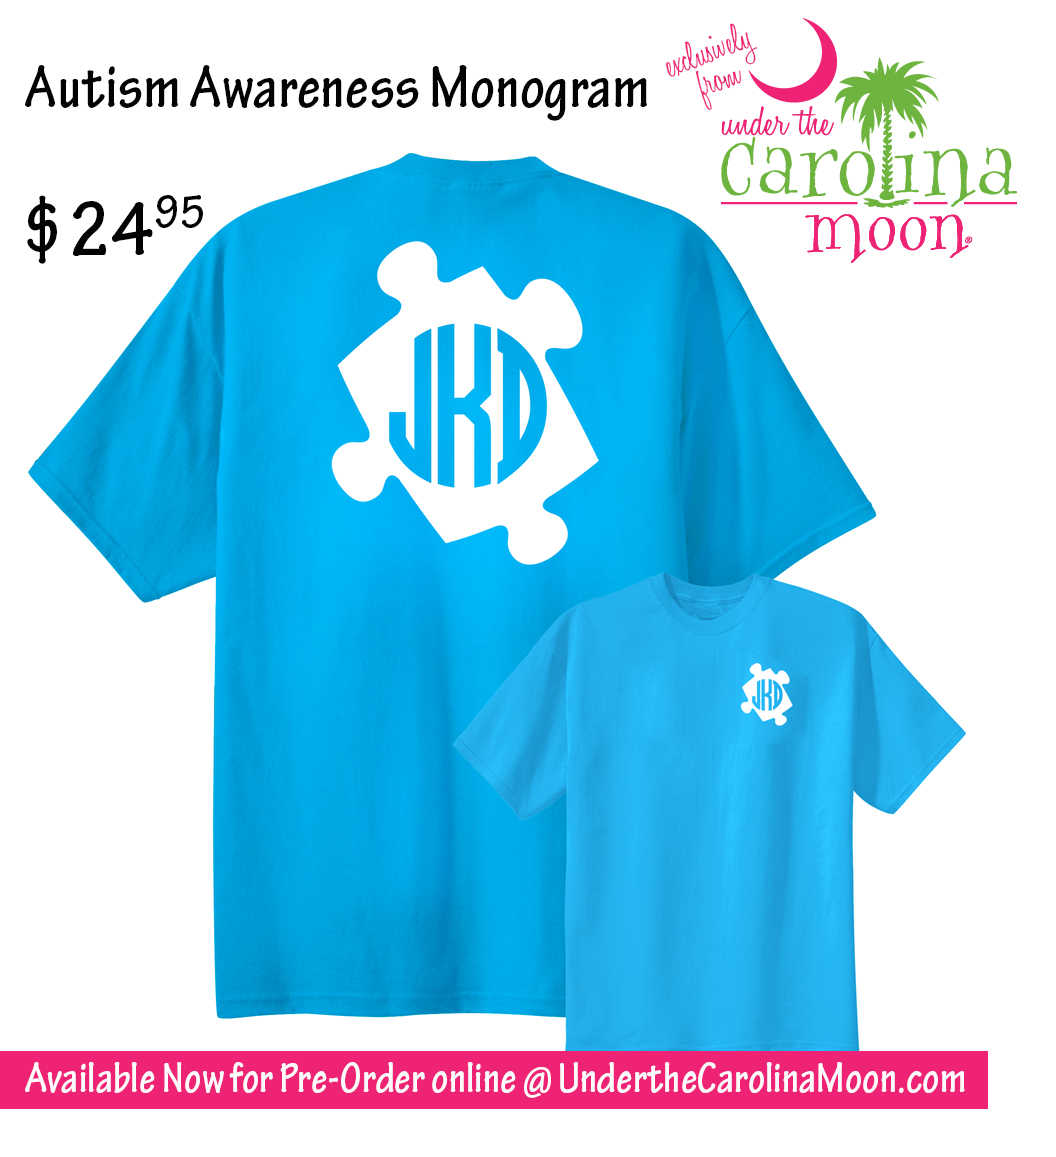 Autism Awareness Monogram Shirt